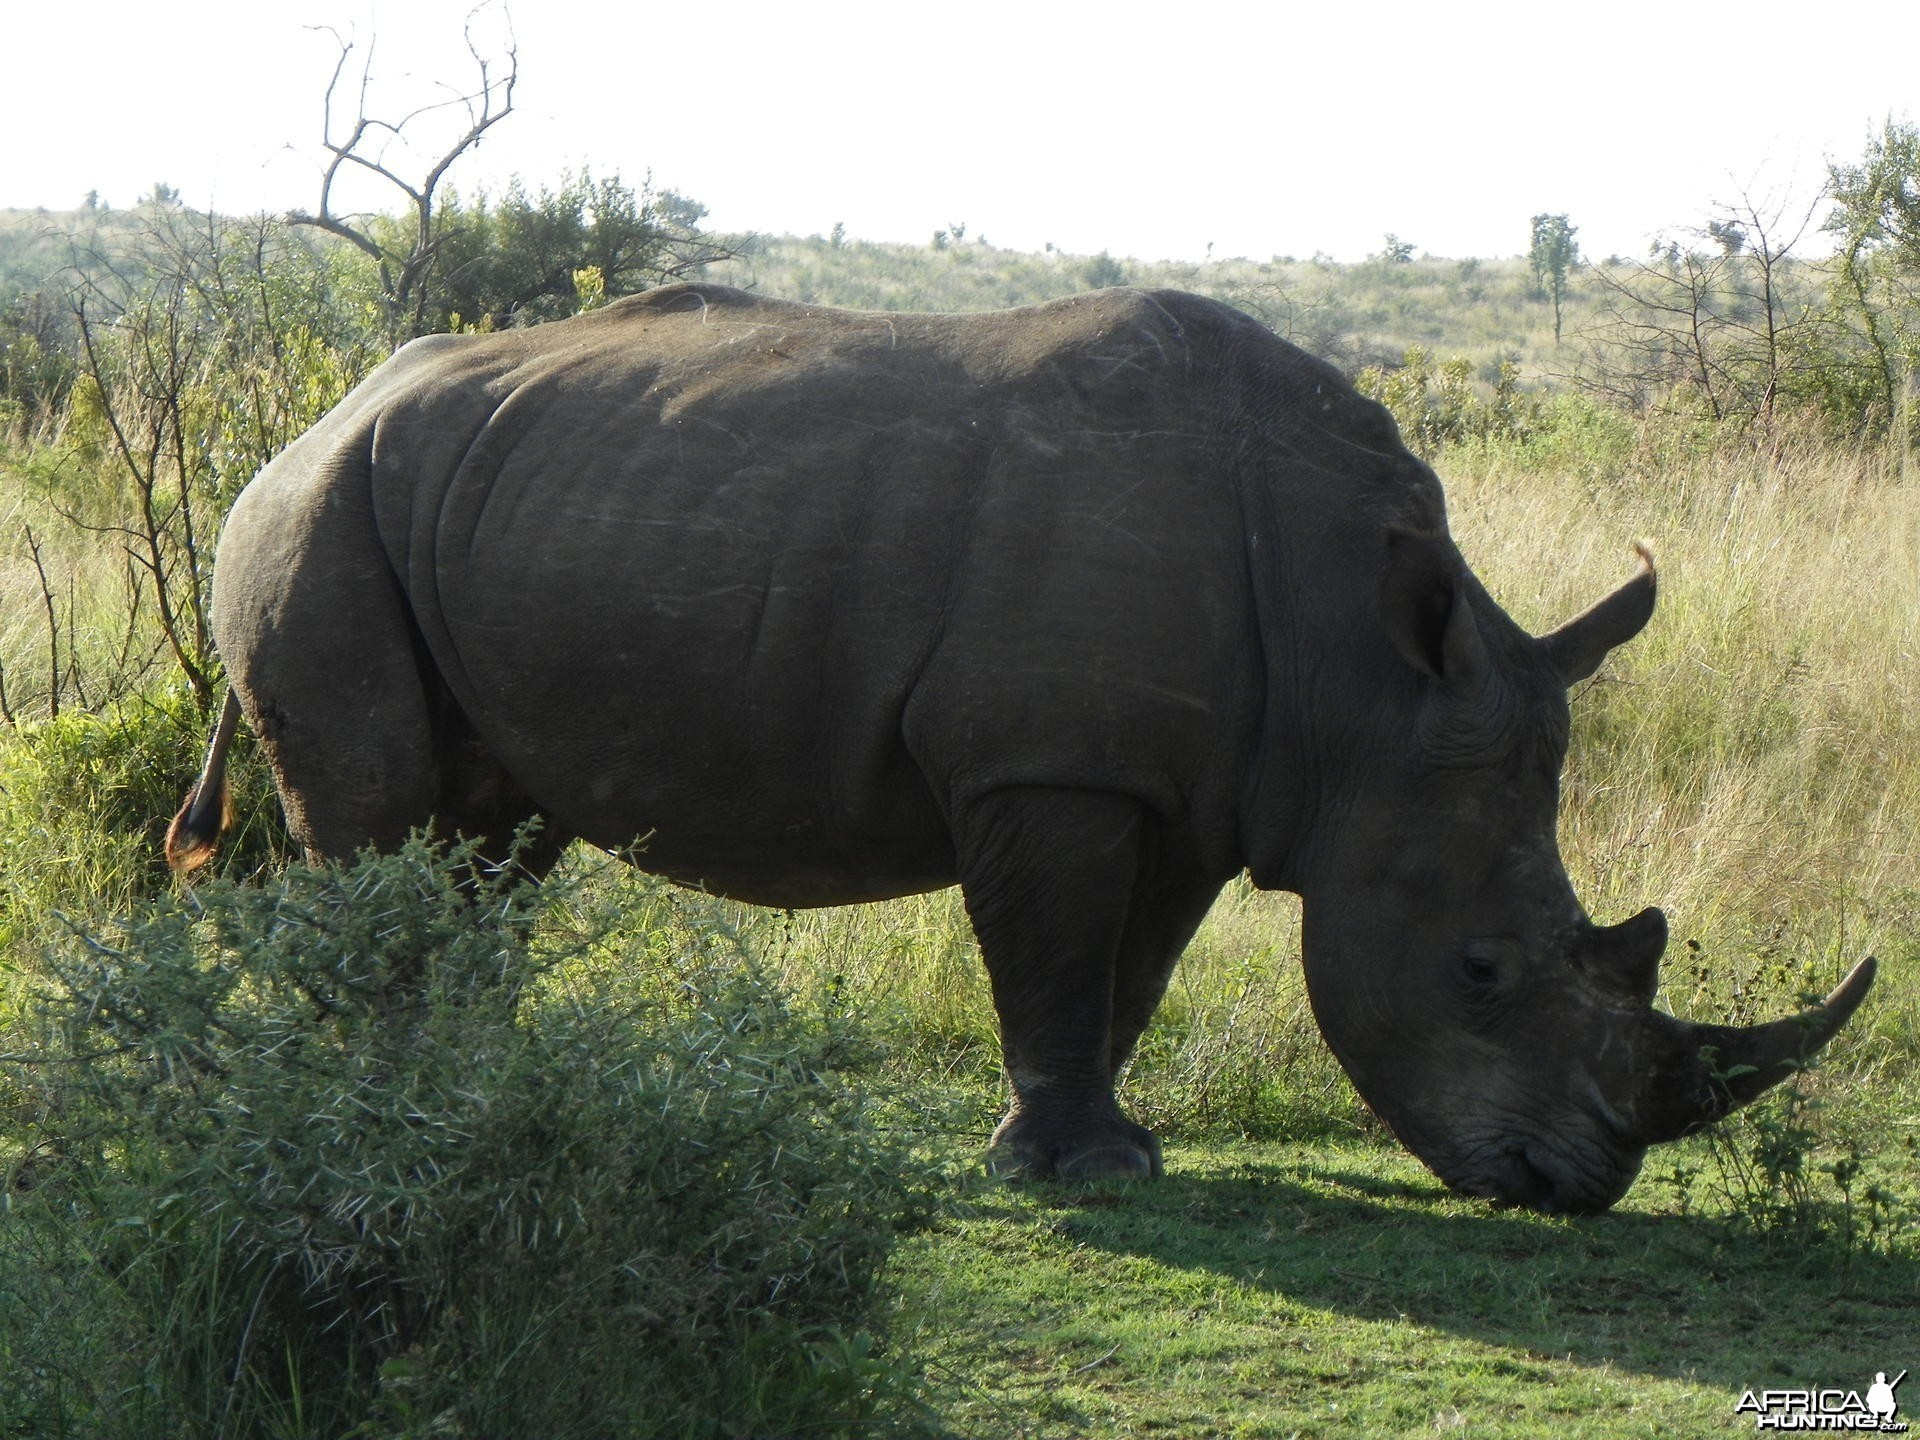 Rhino at Pilannisburg National Park South Africa